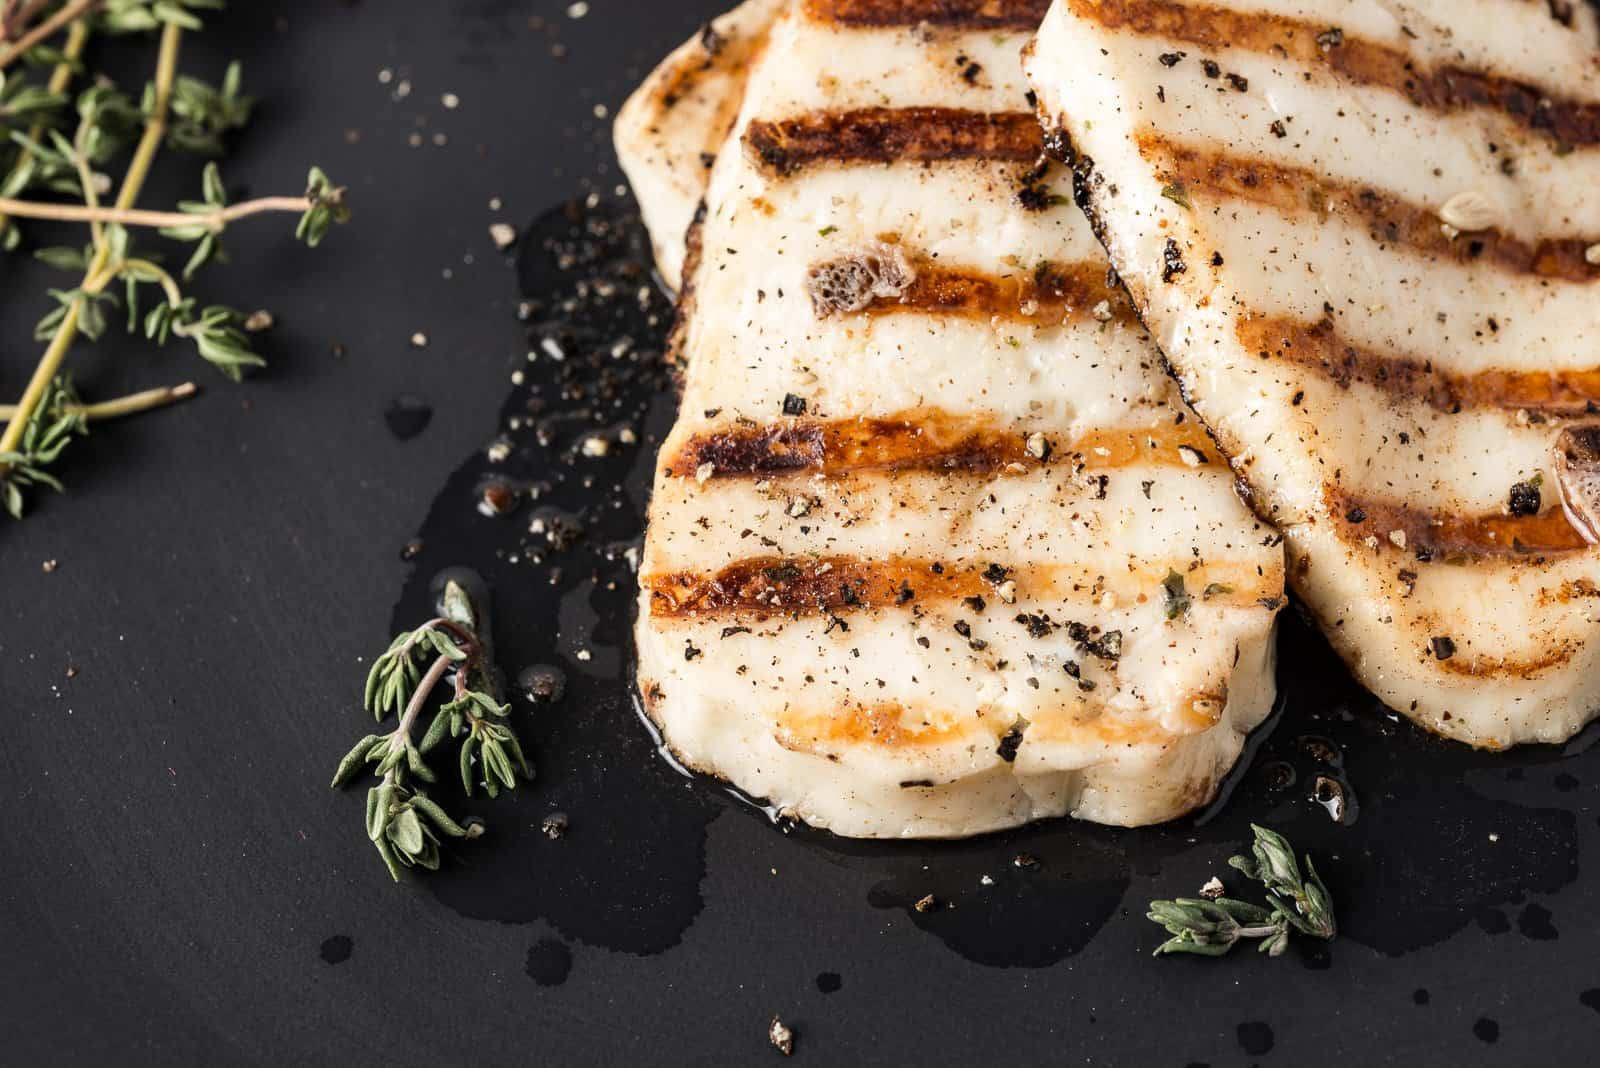 Lemon Thyme Infused Grilled Haloumi